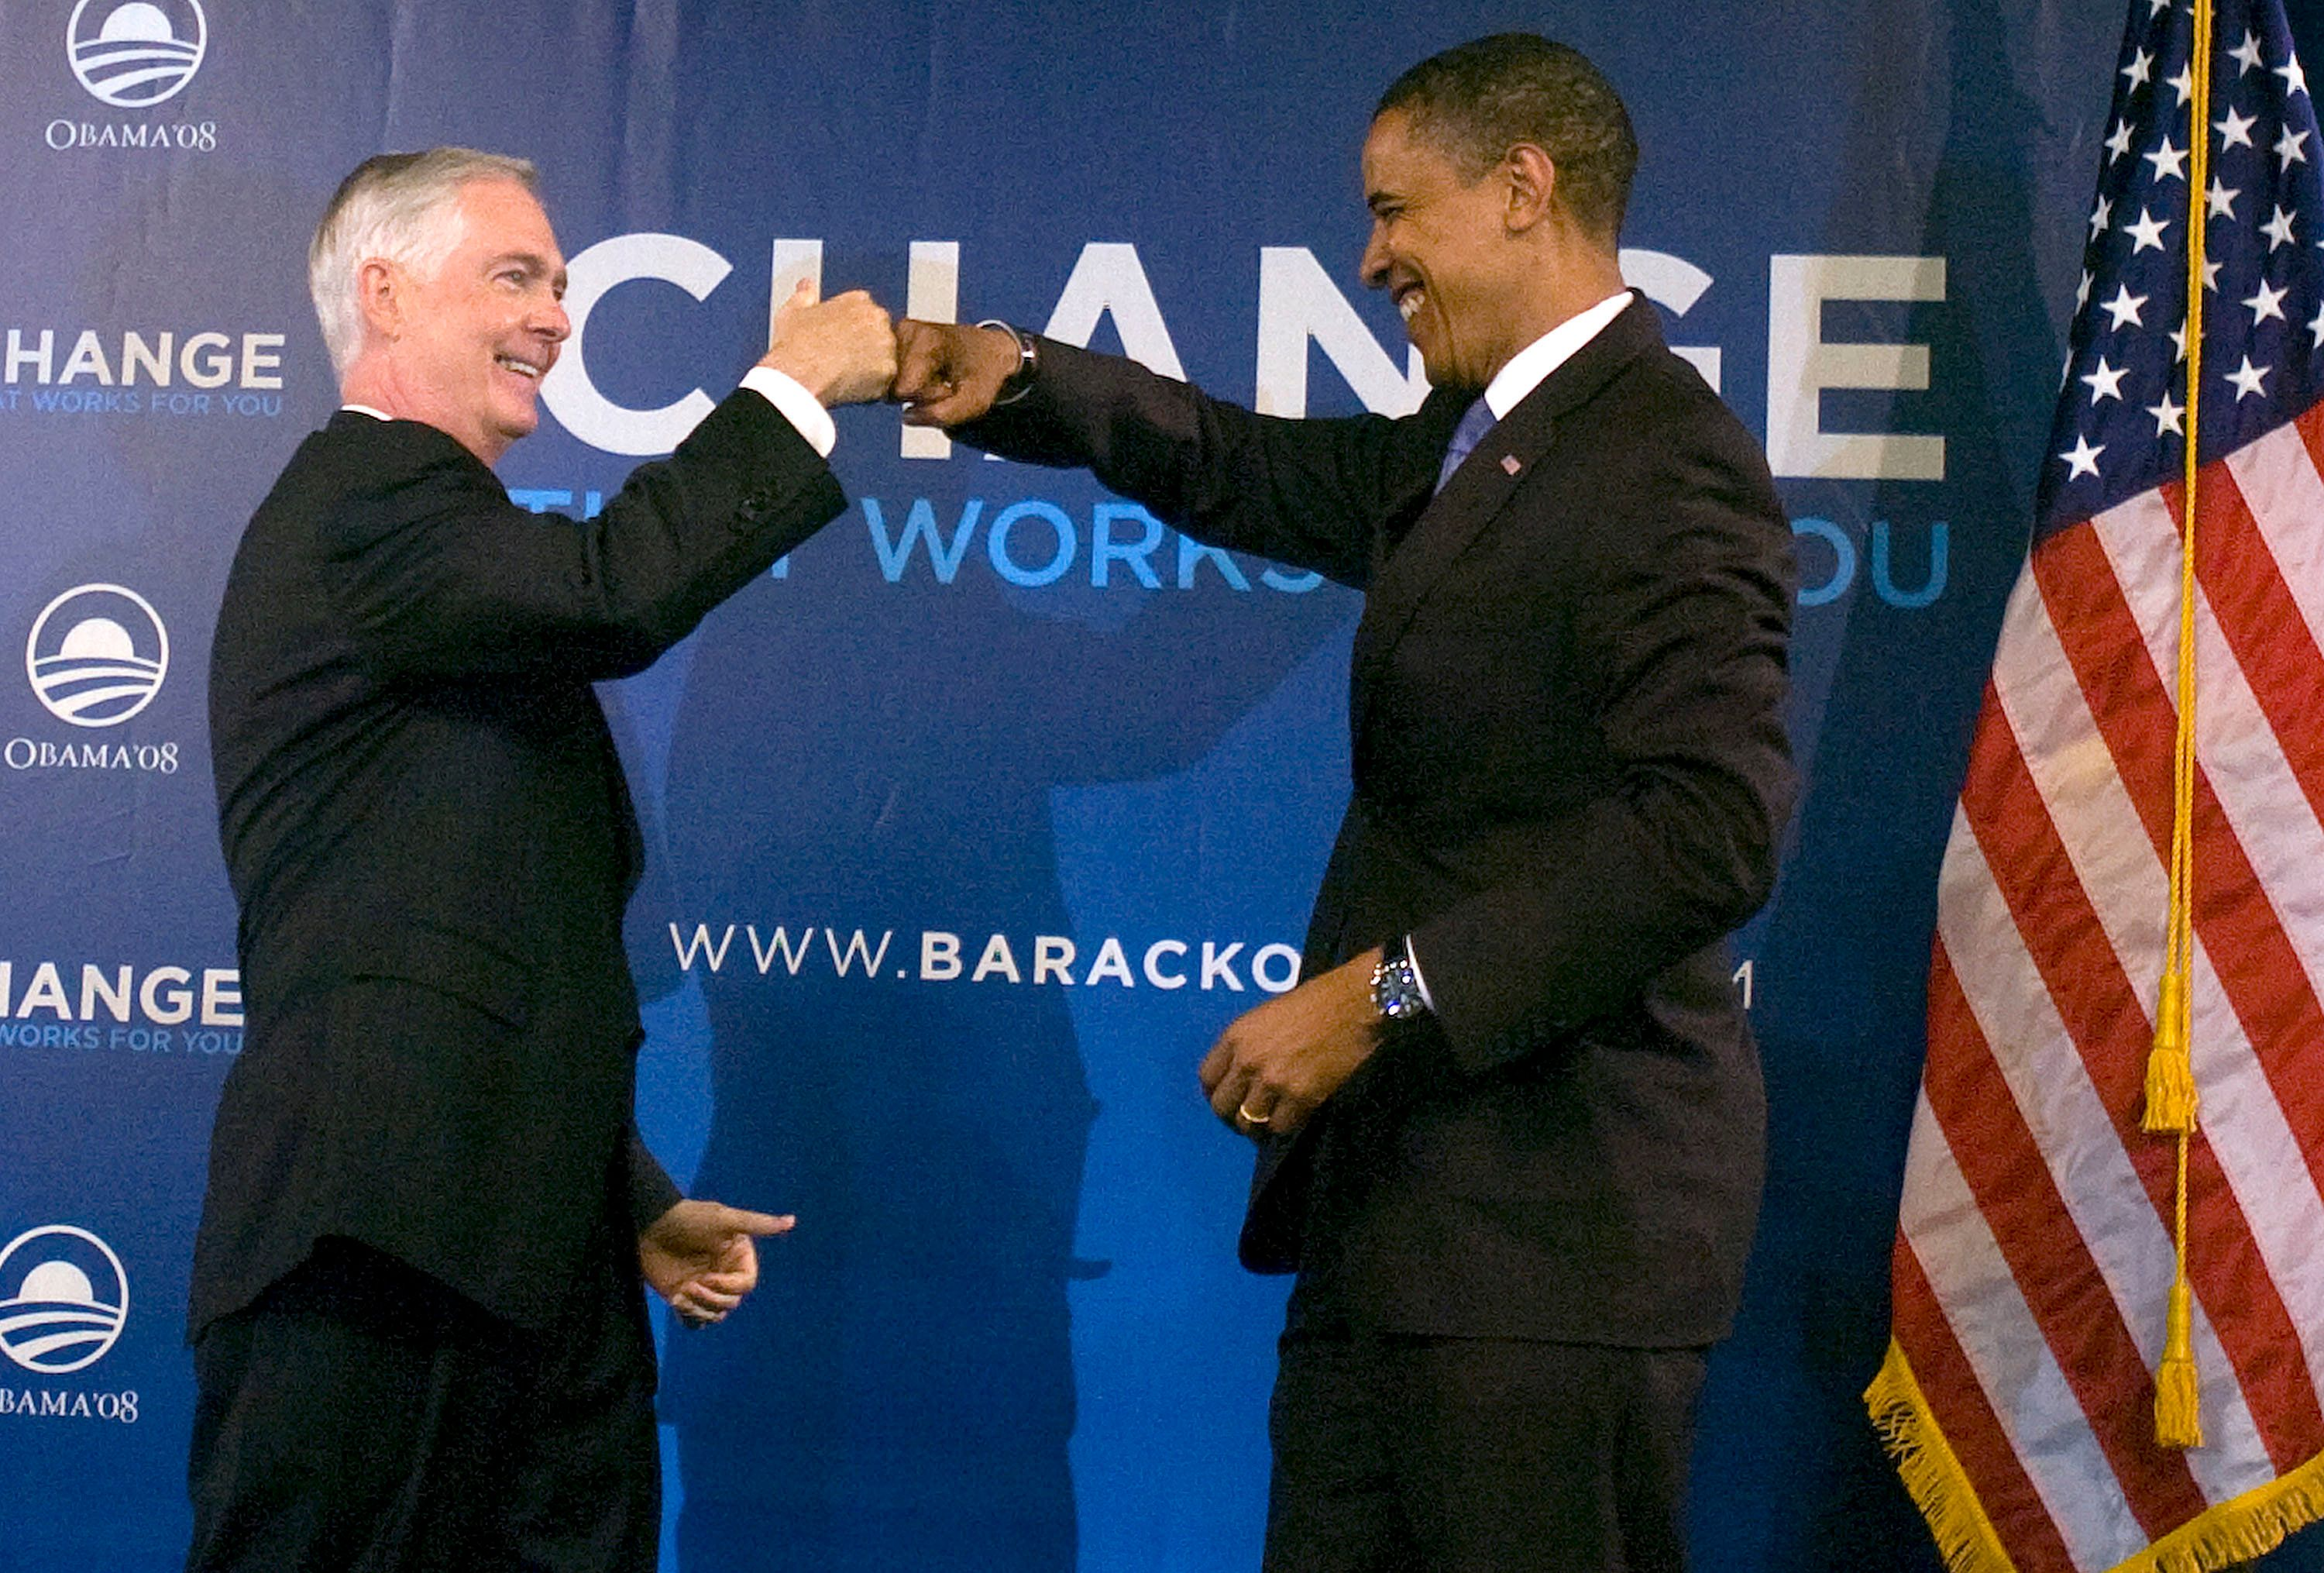 Gov. Mike Easley, left, bumps fists with Democratic presidential candidate Sen. Barack Obama after introducing him to an invitation-only audience at the state fairgrounds, Monday, June 9, 2008, in Raleigh, North Carolina.  (Photo by Shawn Rocco/Raleigh News & Observer/MCT via Getty Images)